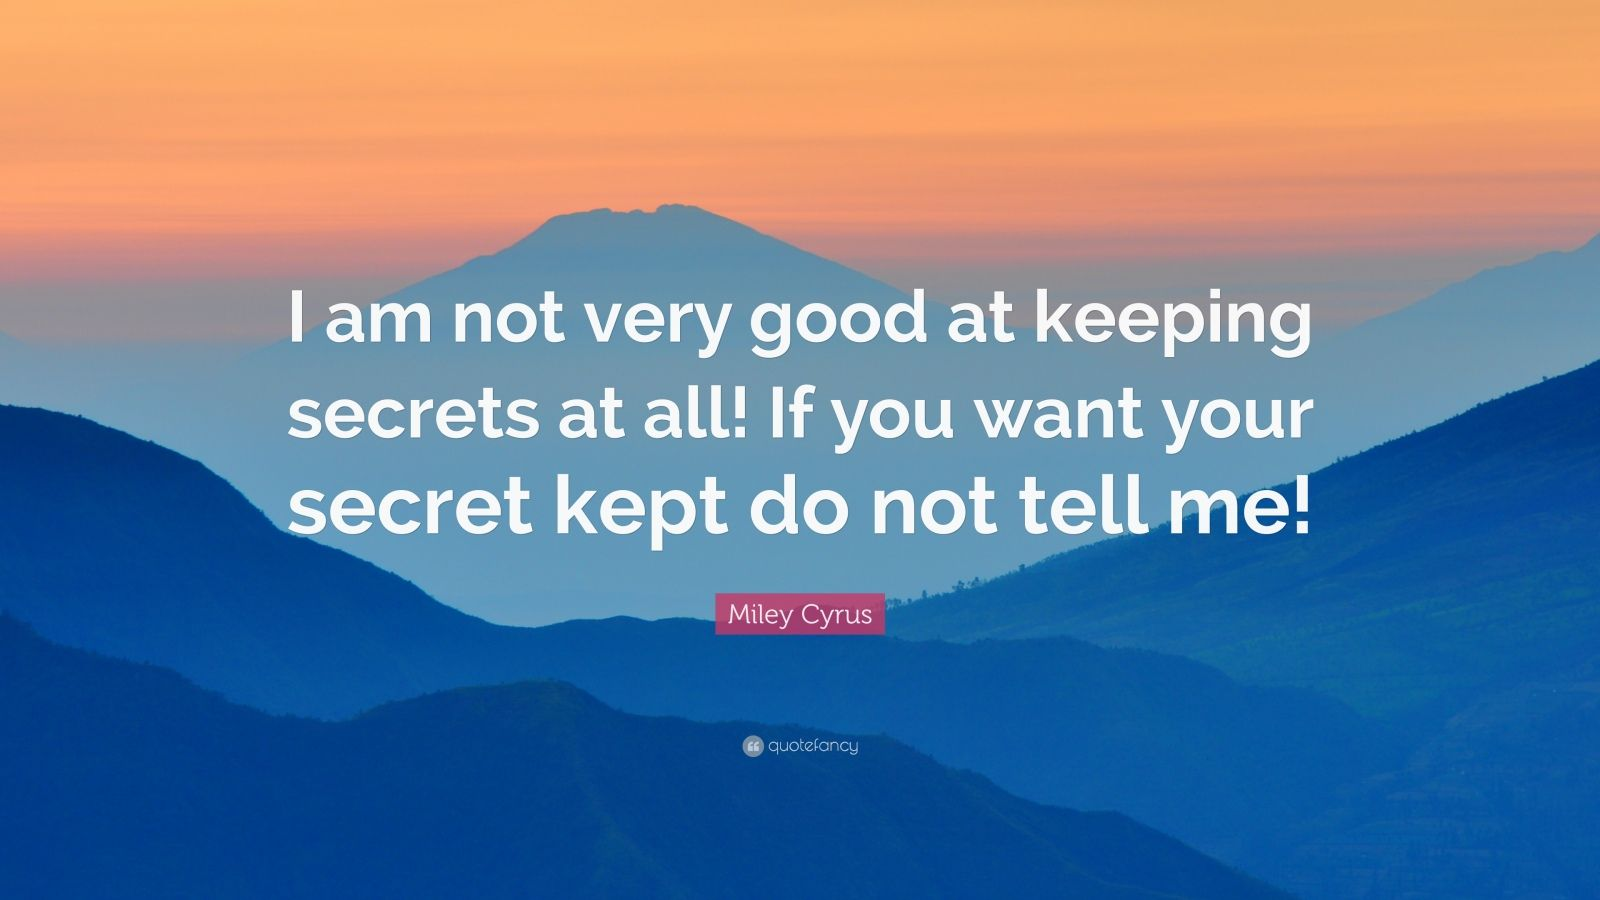 """Miley Cyrus Quote: """"I am not very good at keeping secrets at all! If you want your secret kept do not tell me!"""""""